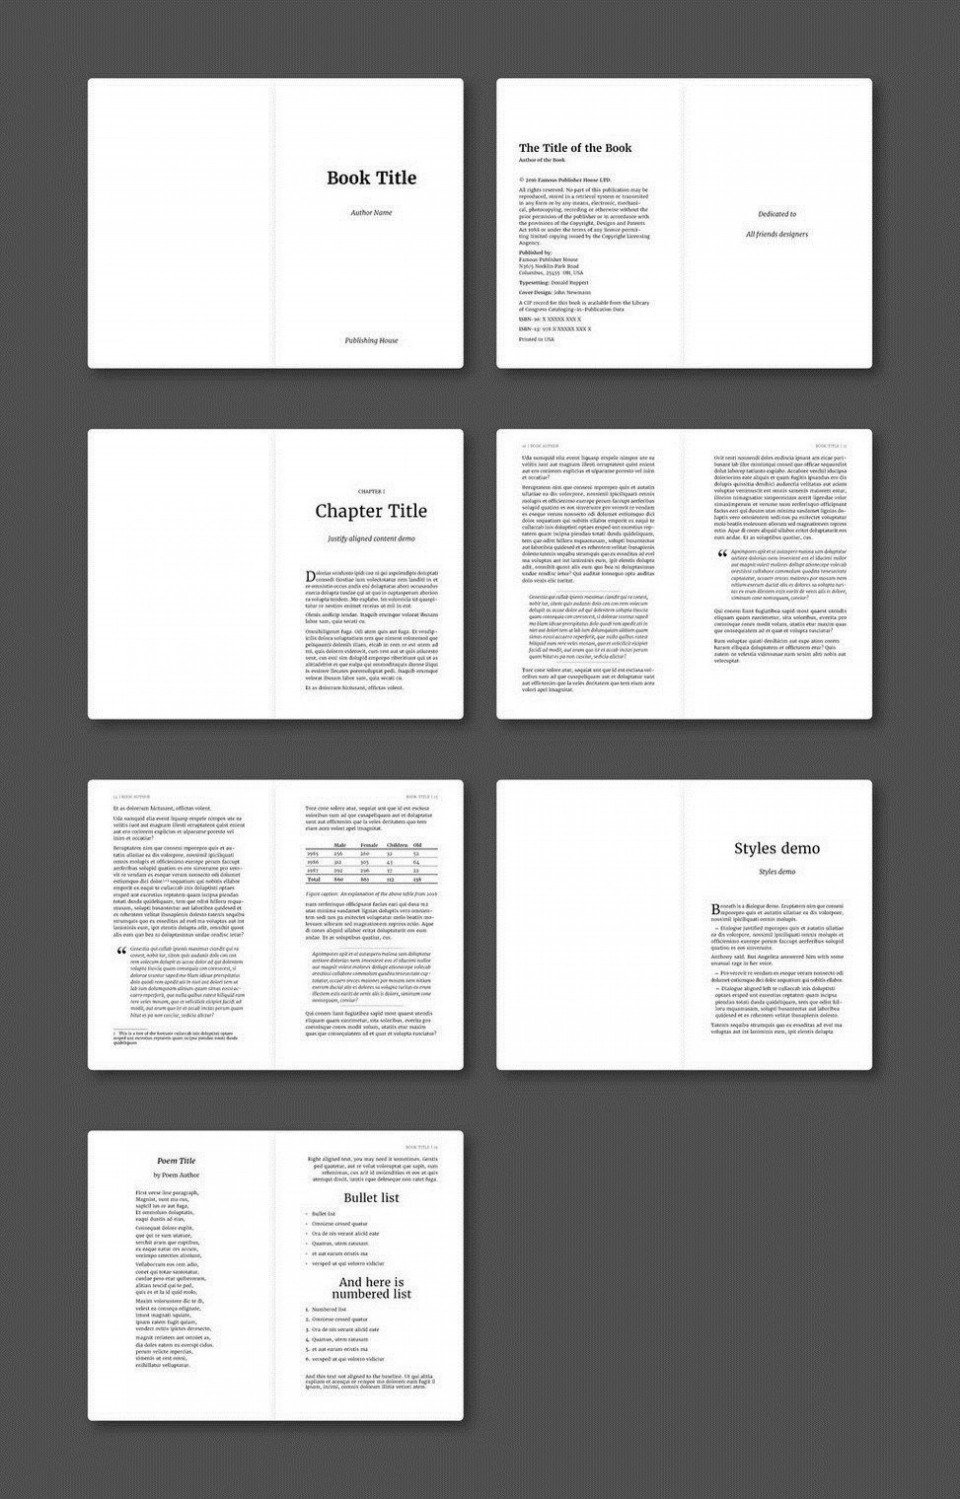 002 Fearsome Free Indesign Book Template Download High Definition  Cs6 Adobe960